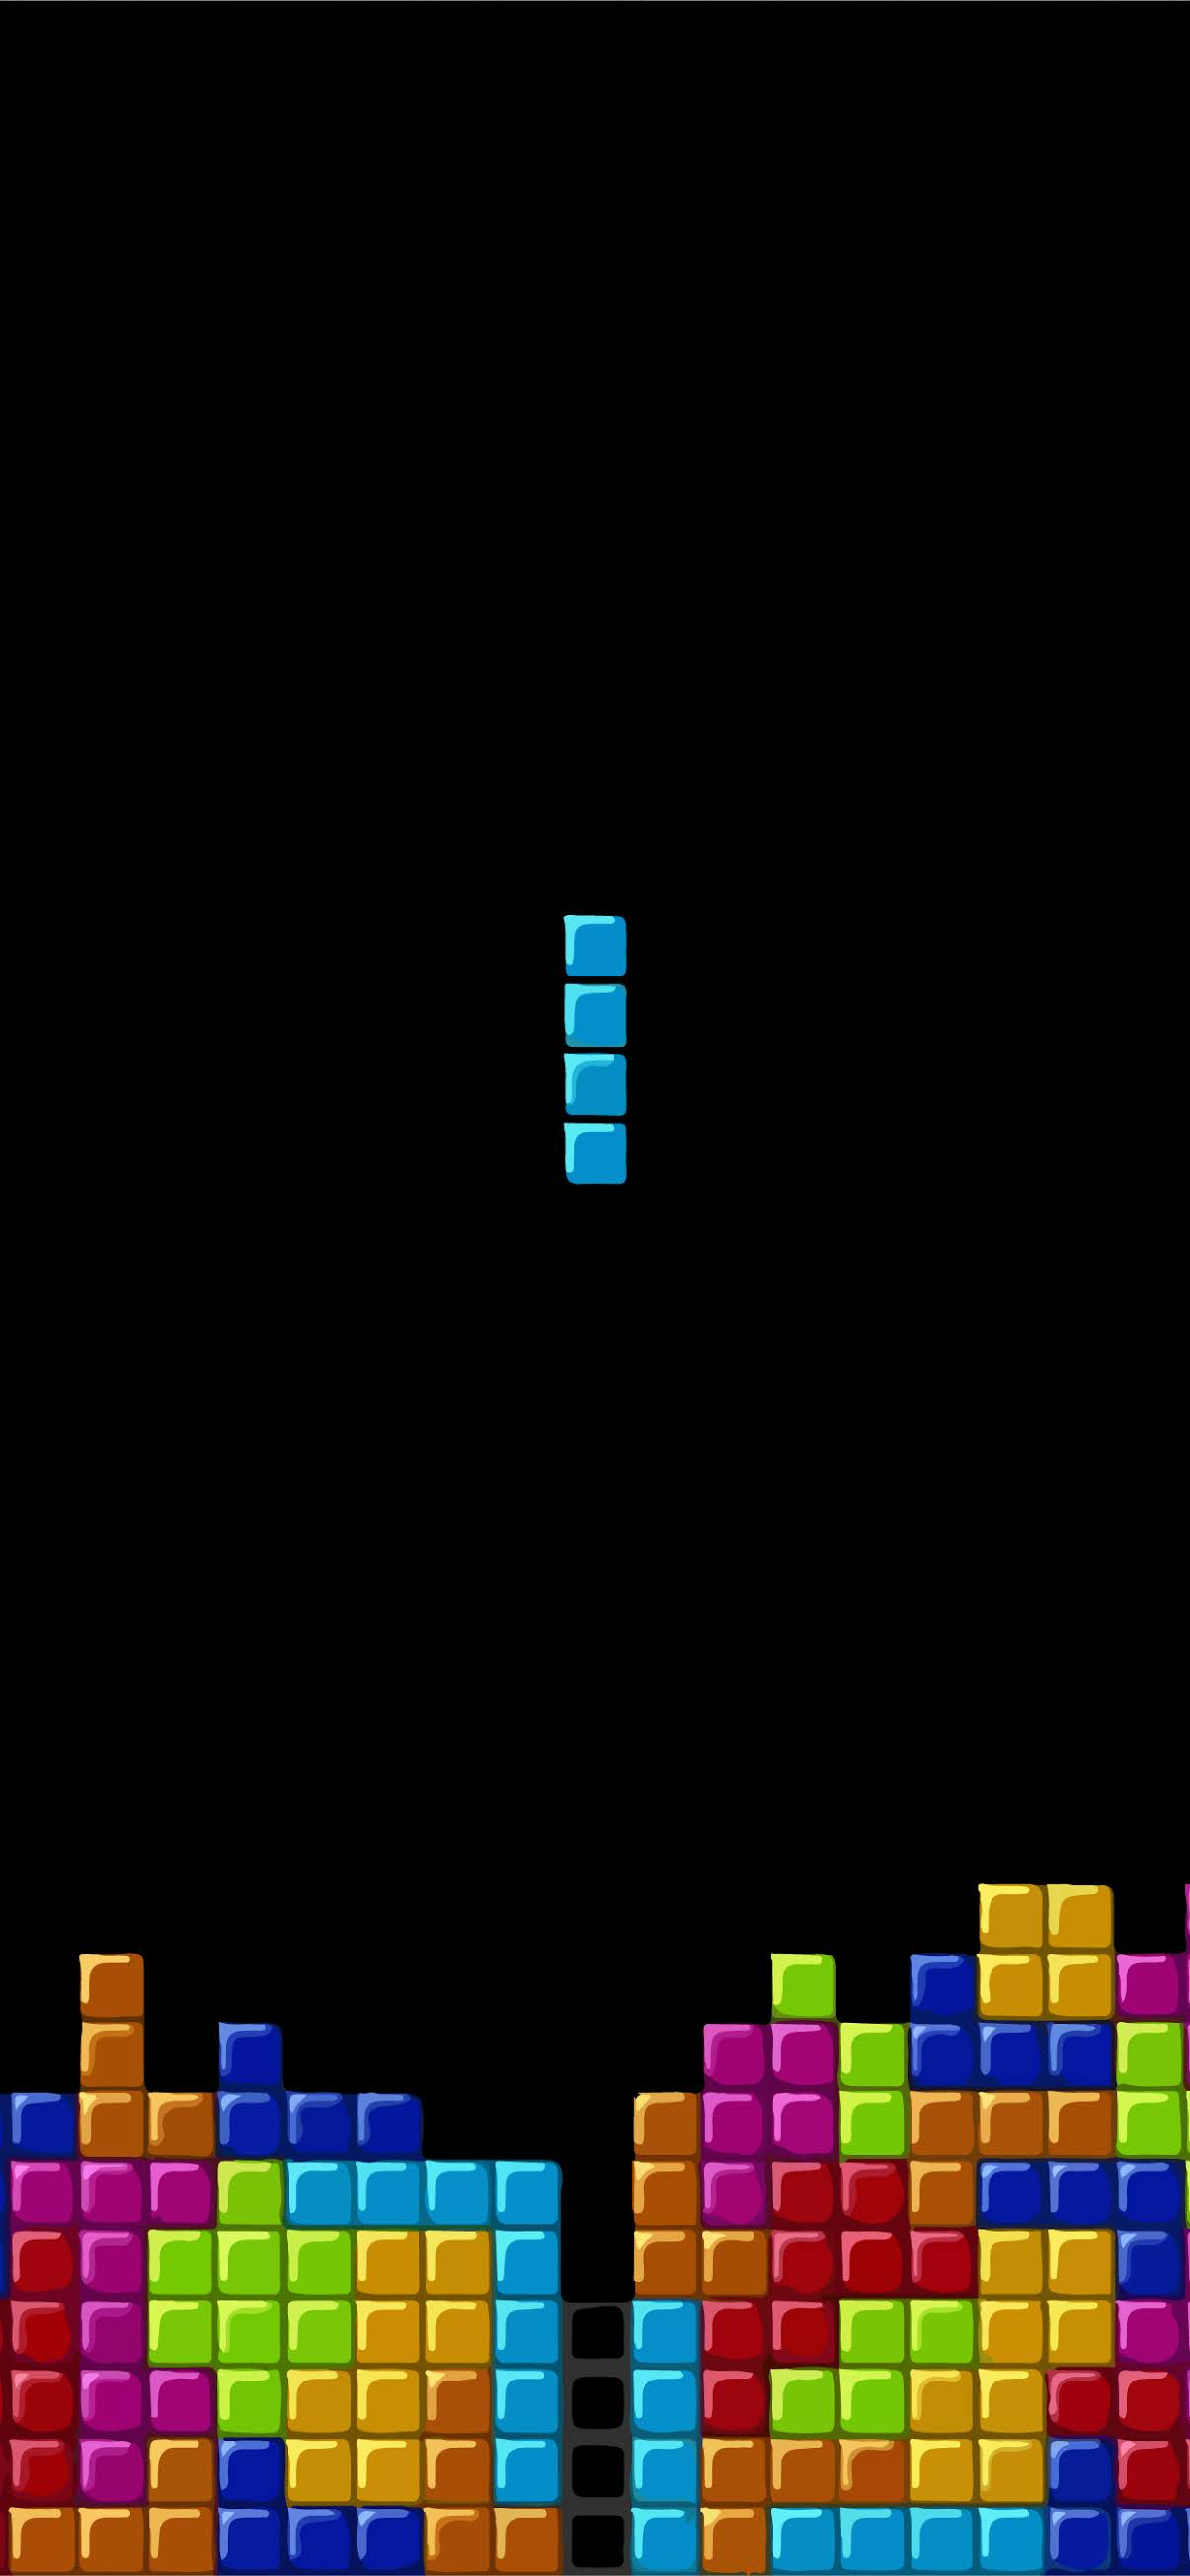 tetris hd background for mobile